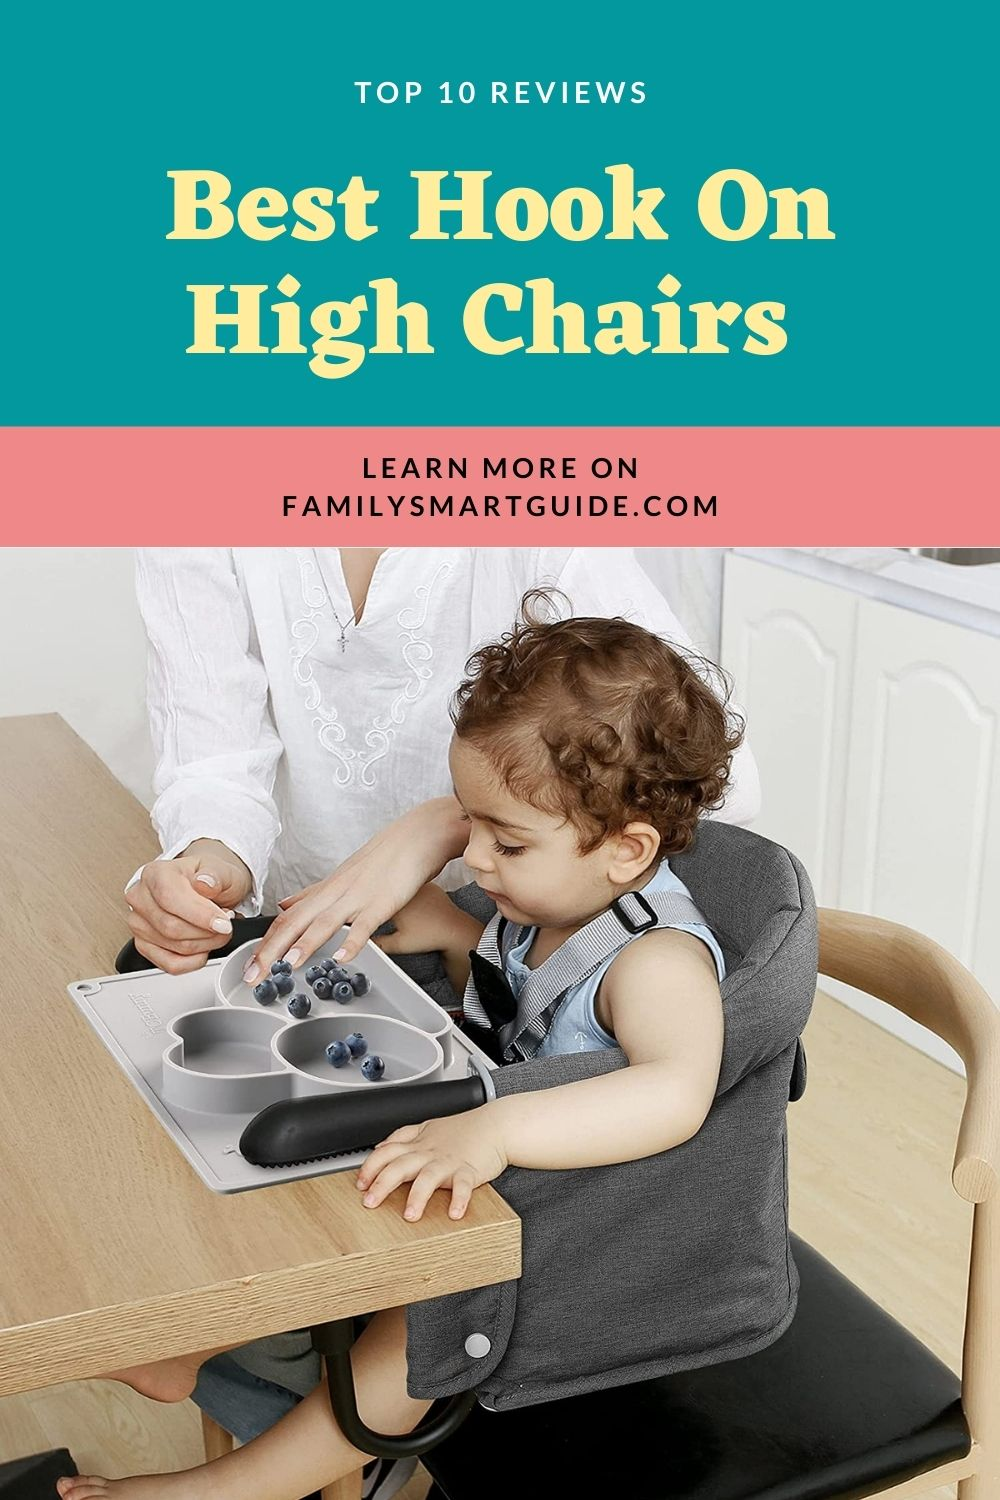 Top 10 Best Hook On High Chairs Reviews